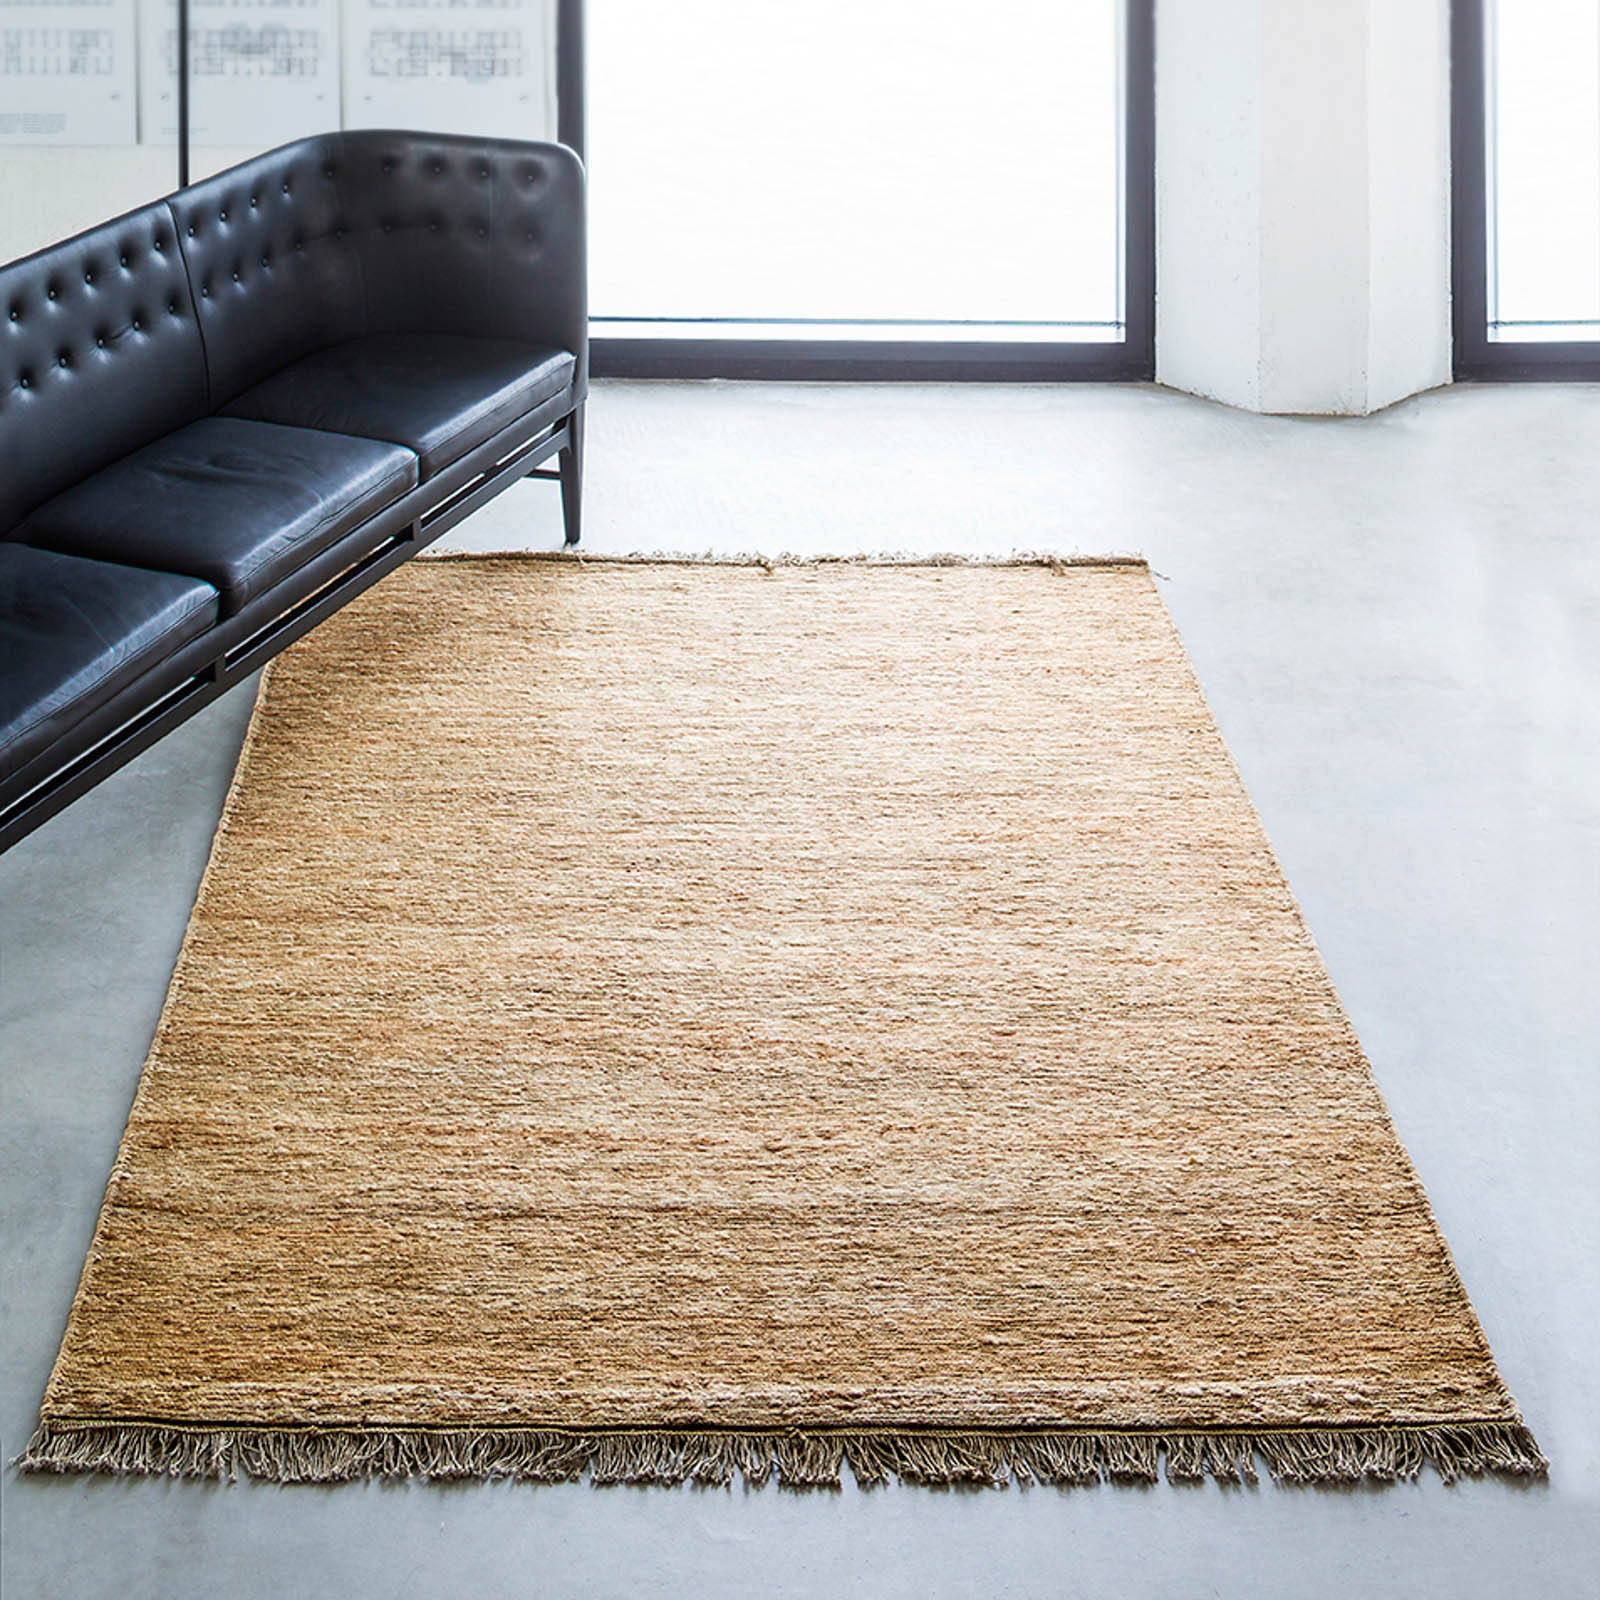 Sumace Hemp Rugs in Natural by Massimo